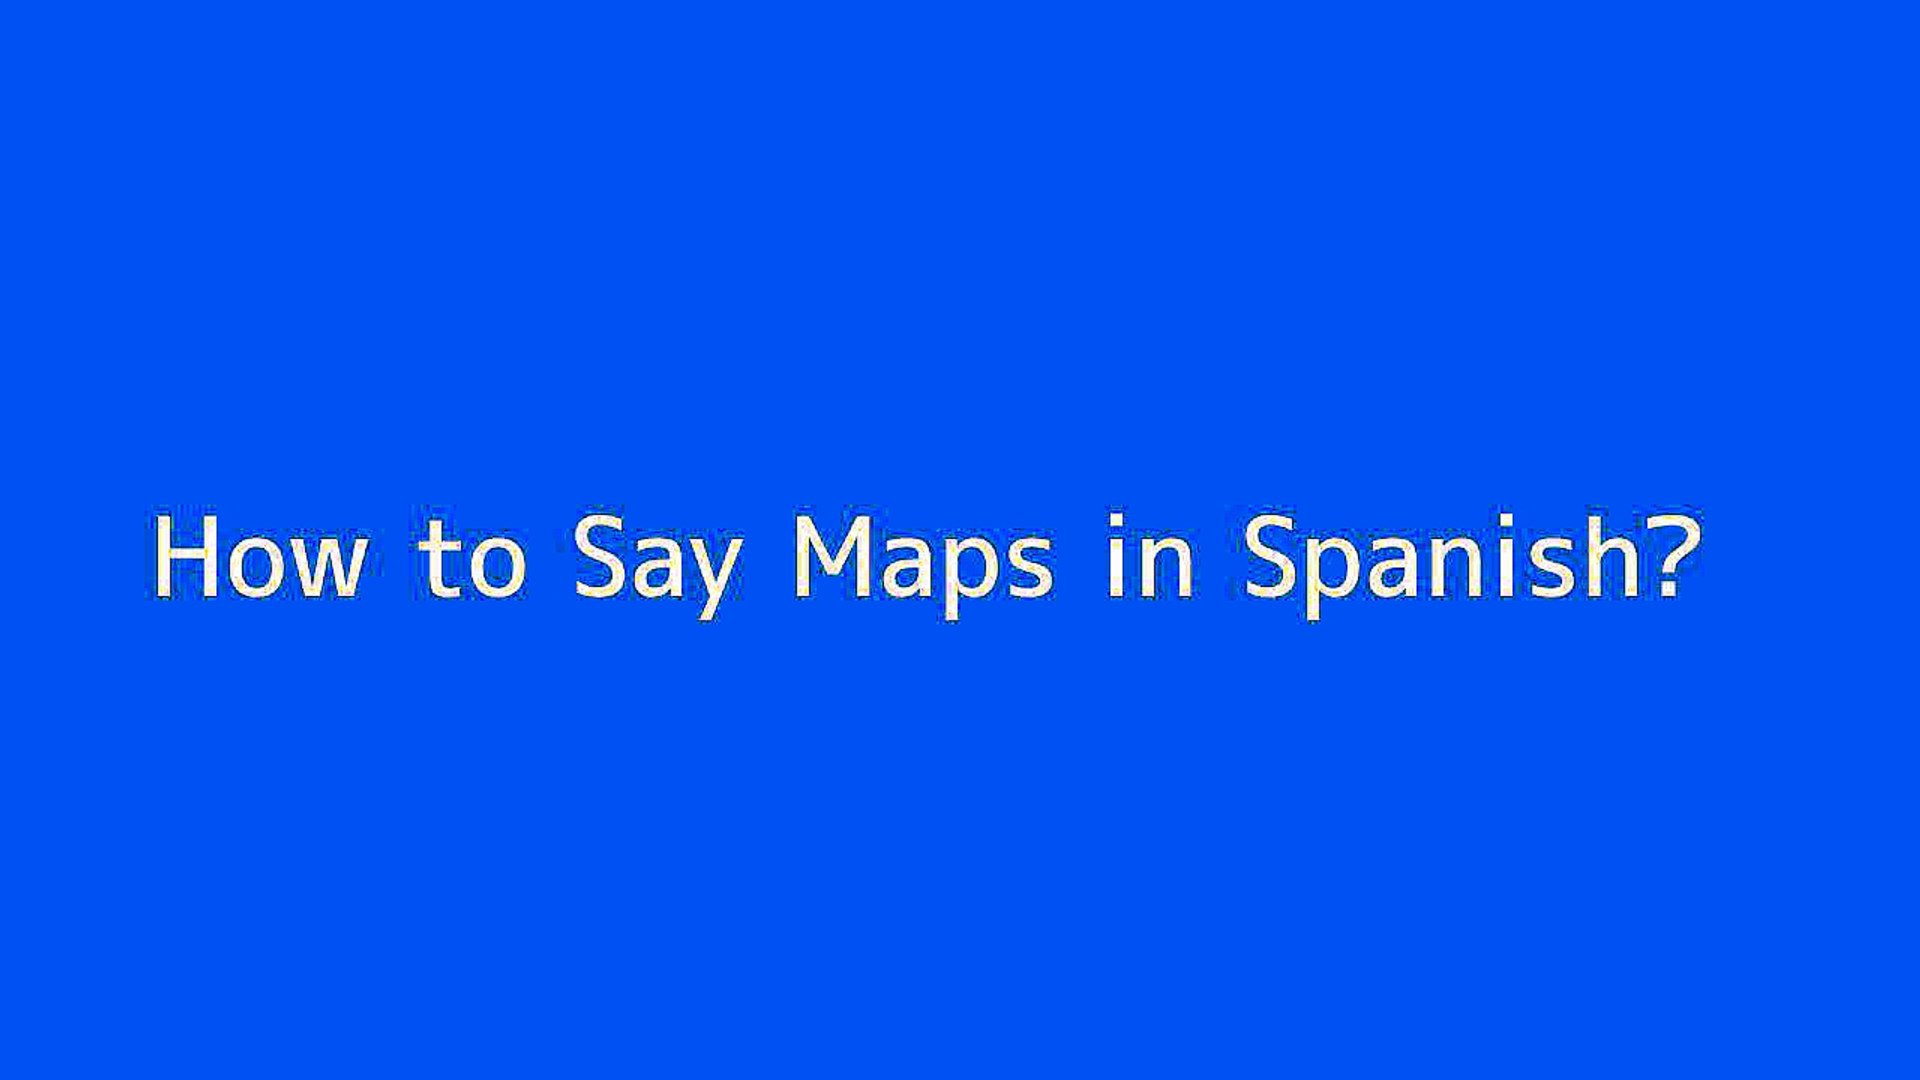 How to say Maps in Spanish